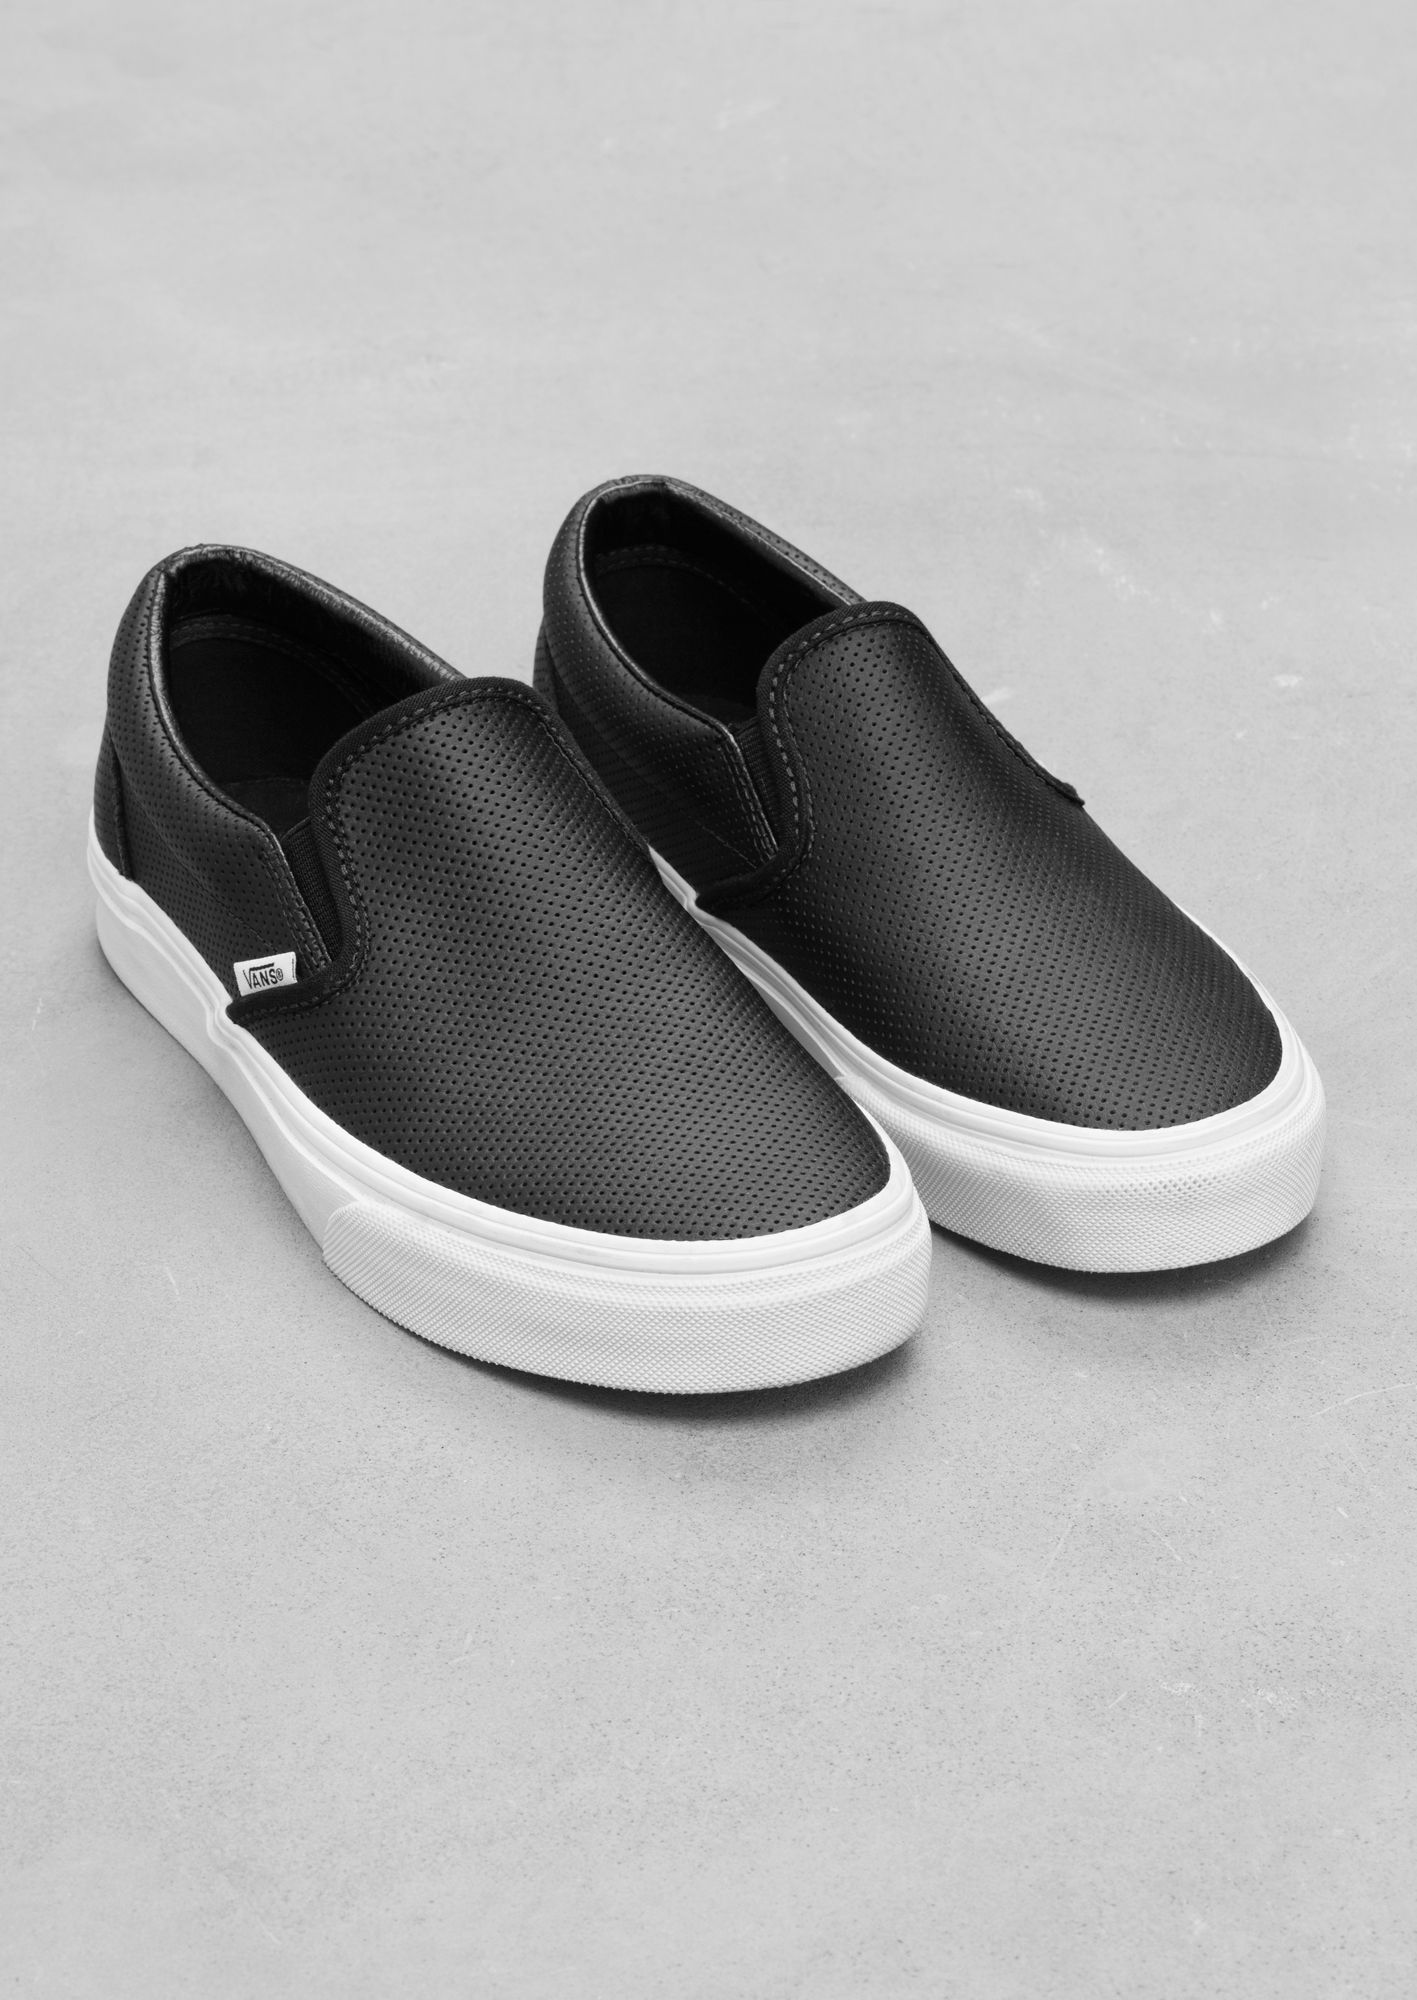 5afdf6944f9 Perf Leather Slip-On en 2019